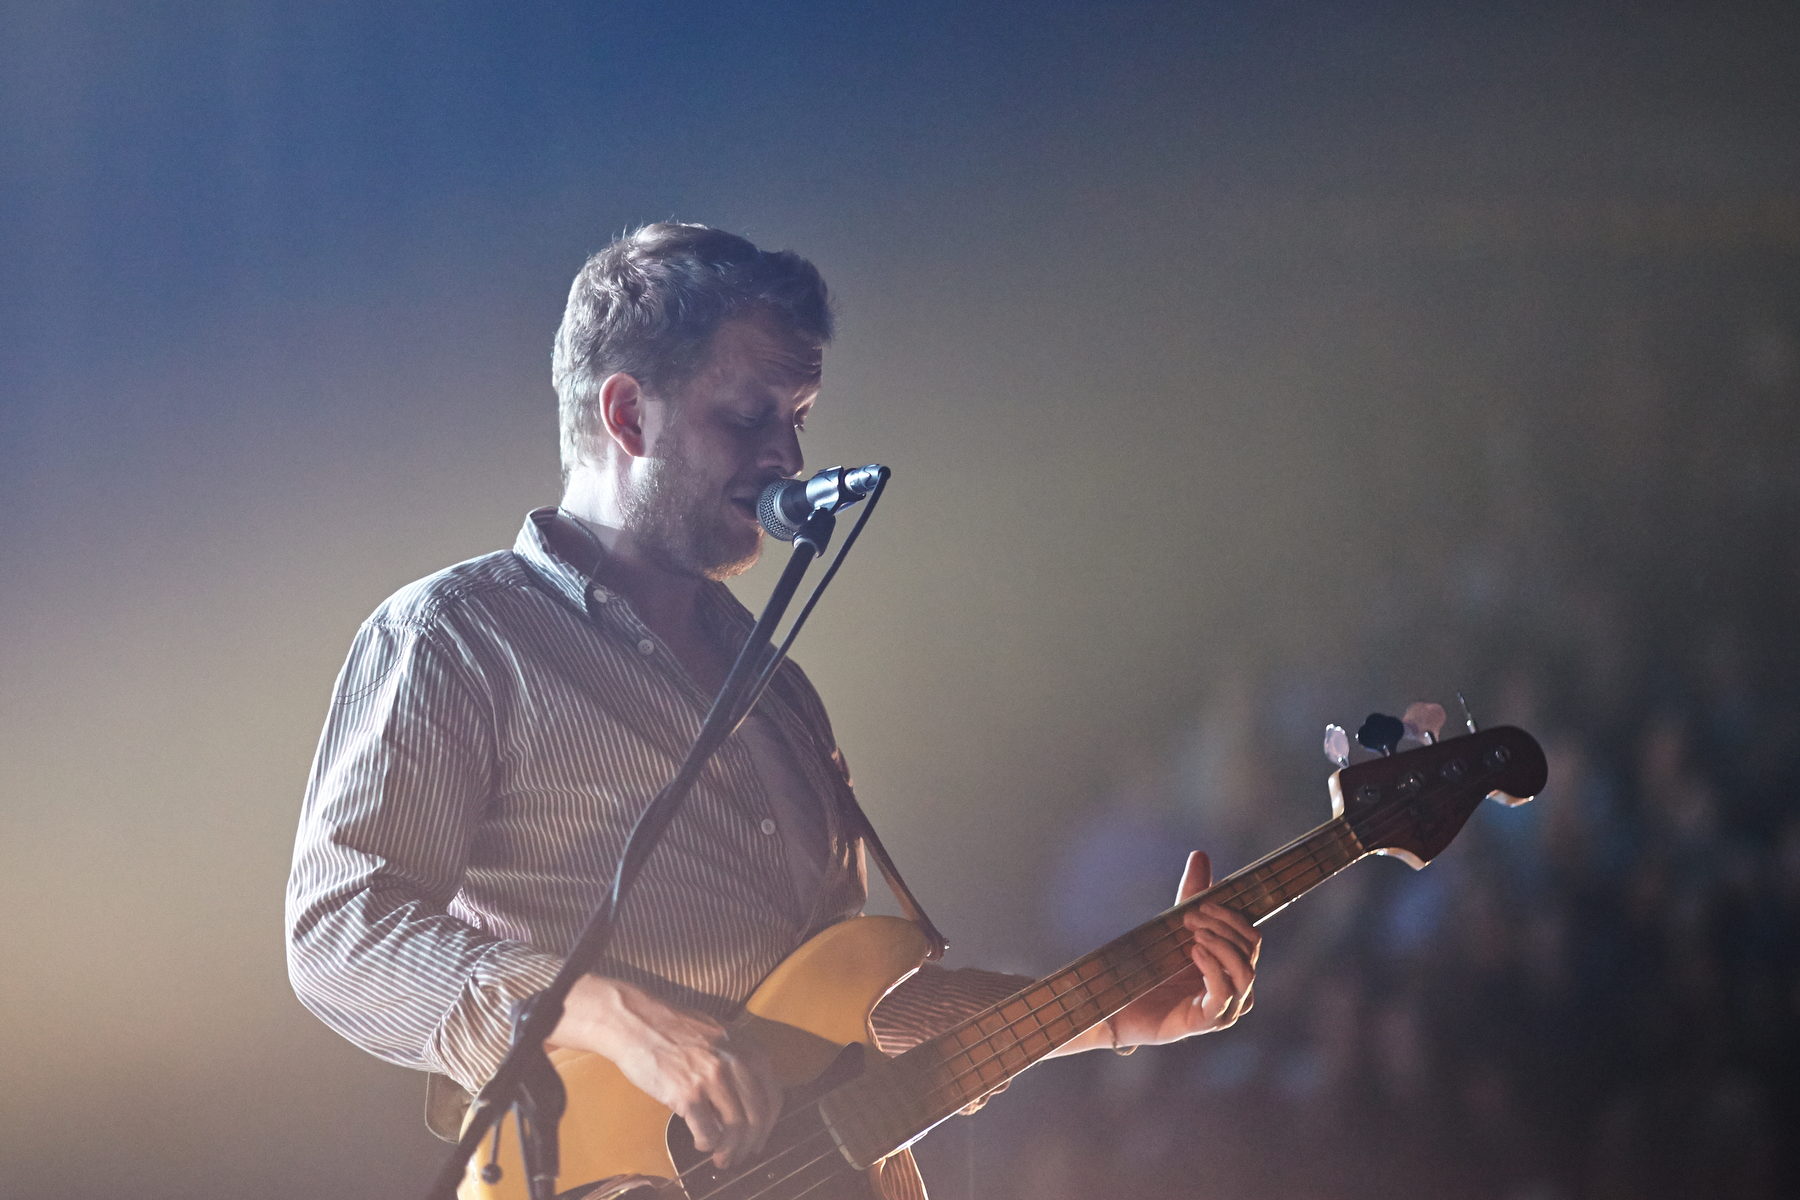 Mumford_And_Sons_At_Xcel_Energy_Center_By_Joe_Lemke_Medium_Res_019.JPG